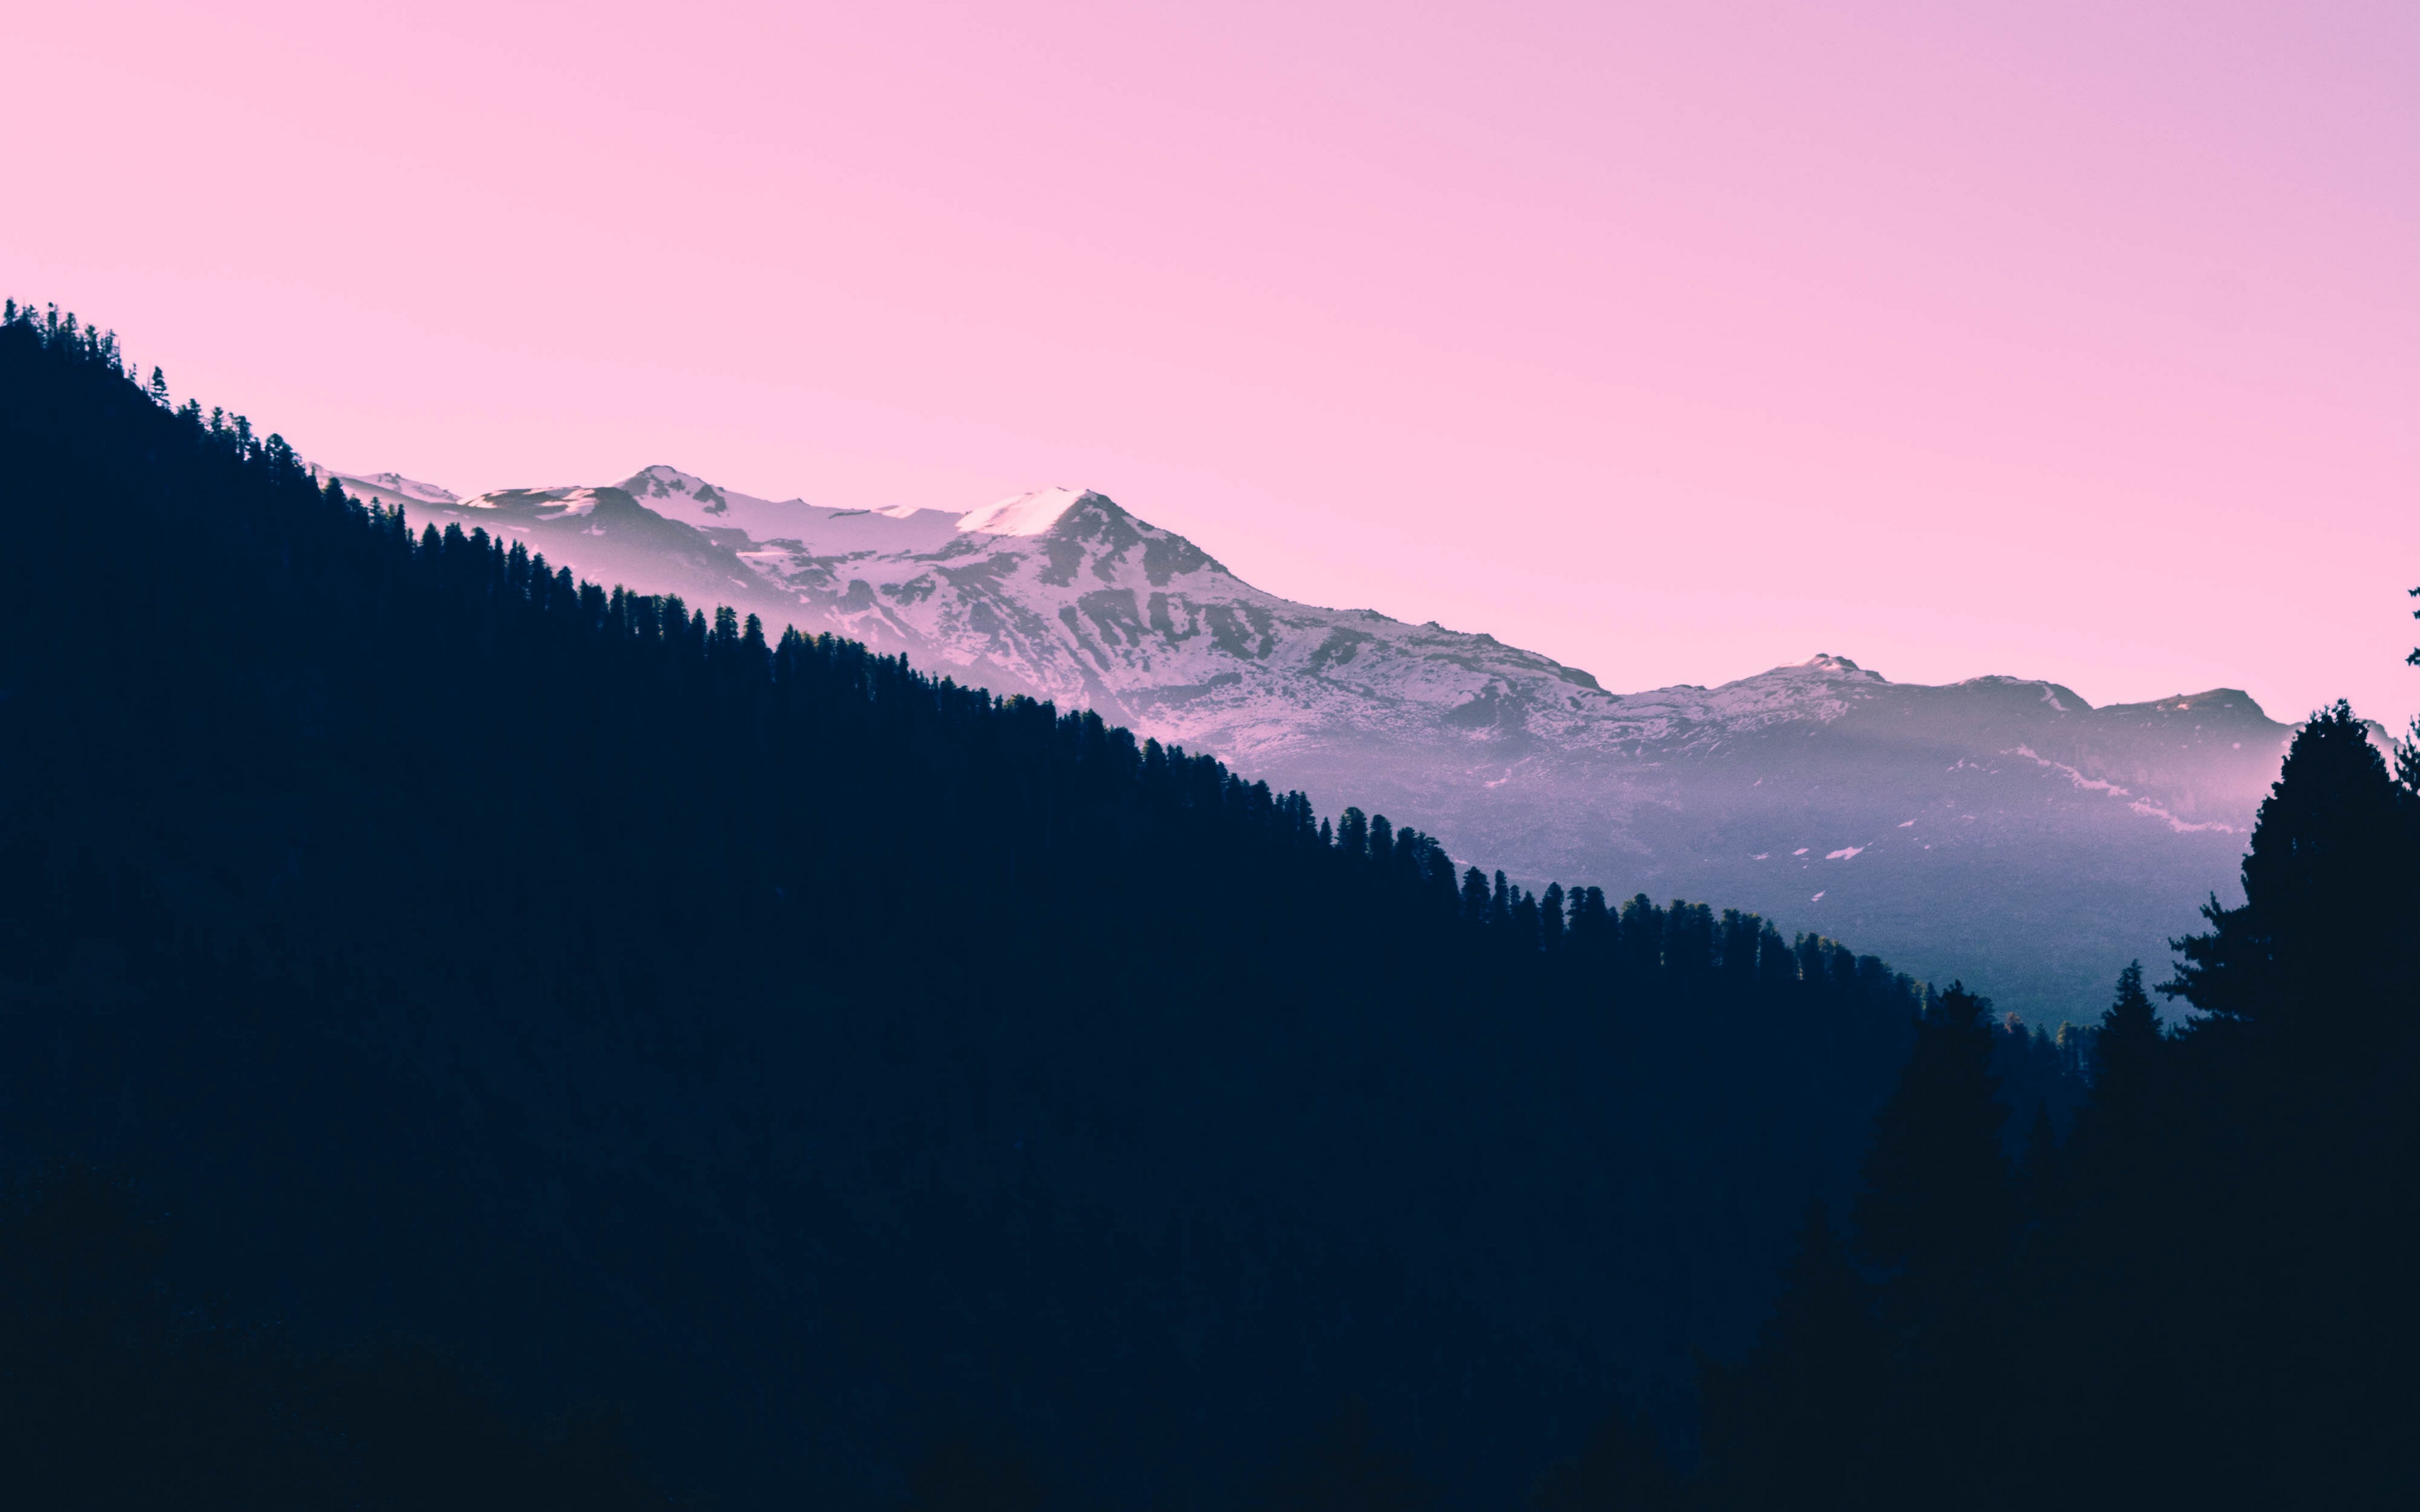 Wallpaper Mountains Sunset Trees Sky Pink   Hd Wallpaper 3840x2400